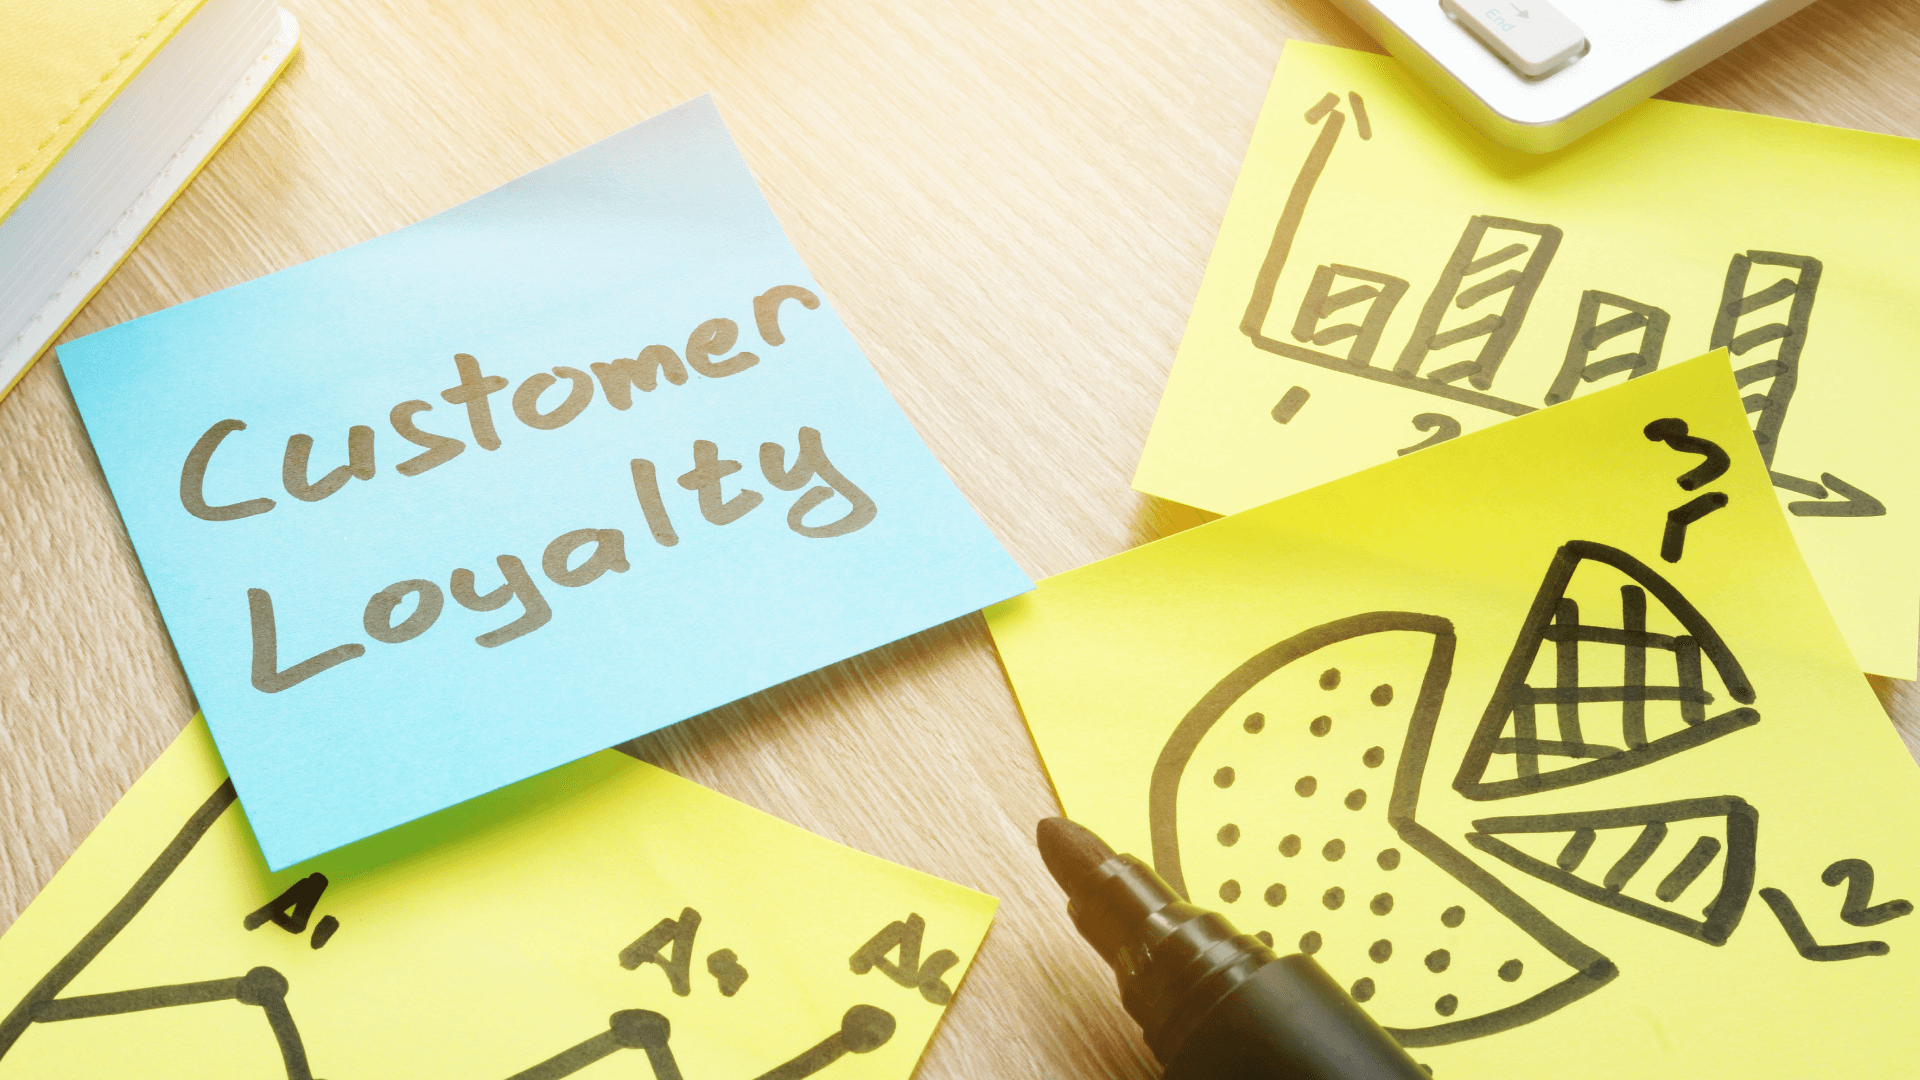 Customer Loyalty is what you need in 2021